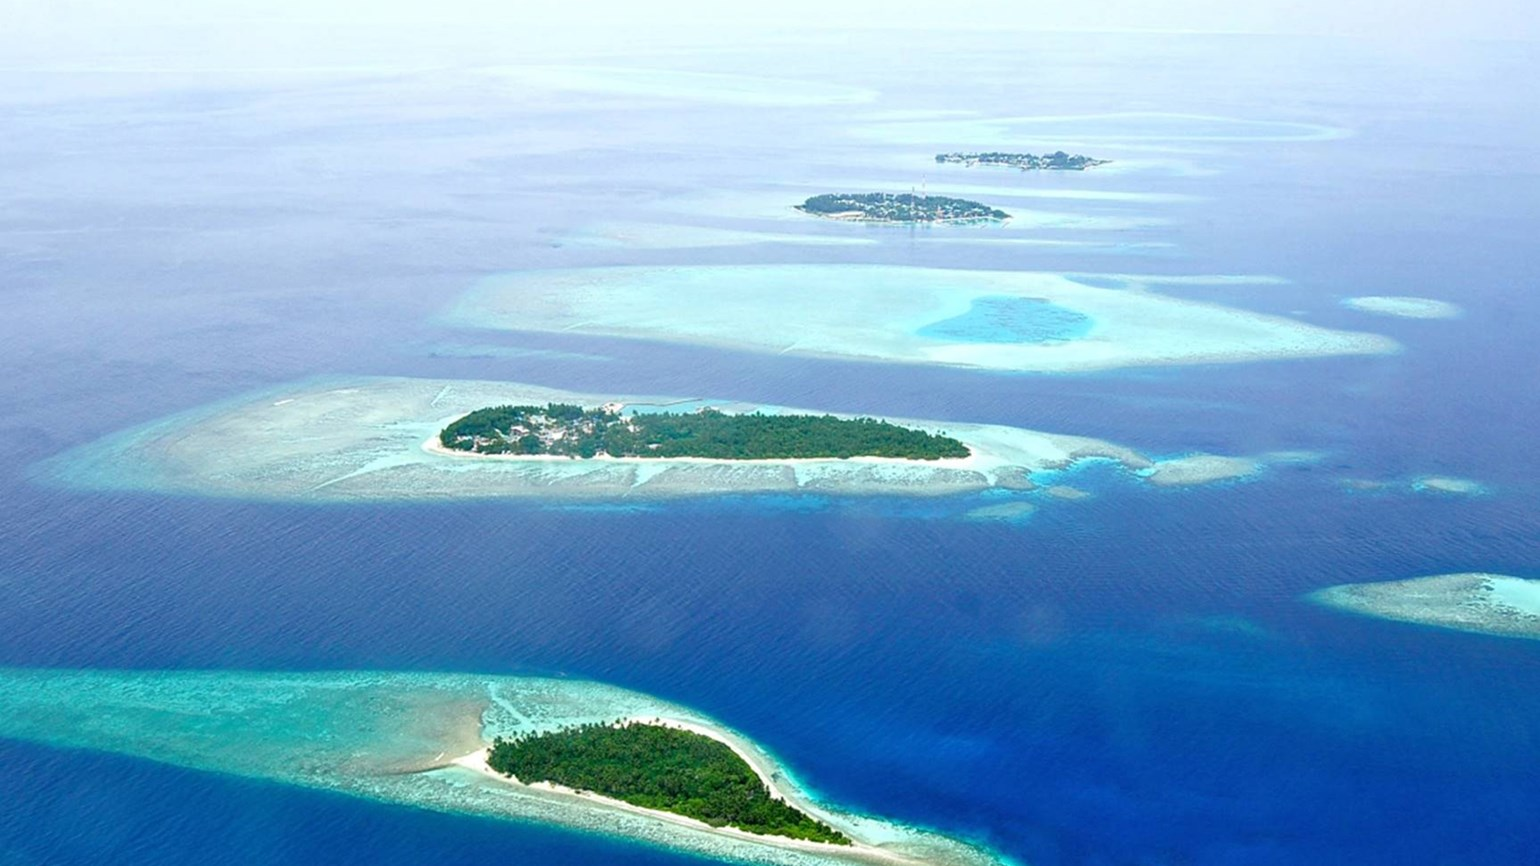 Maldives tour, $1,500